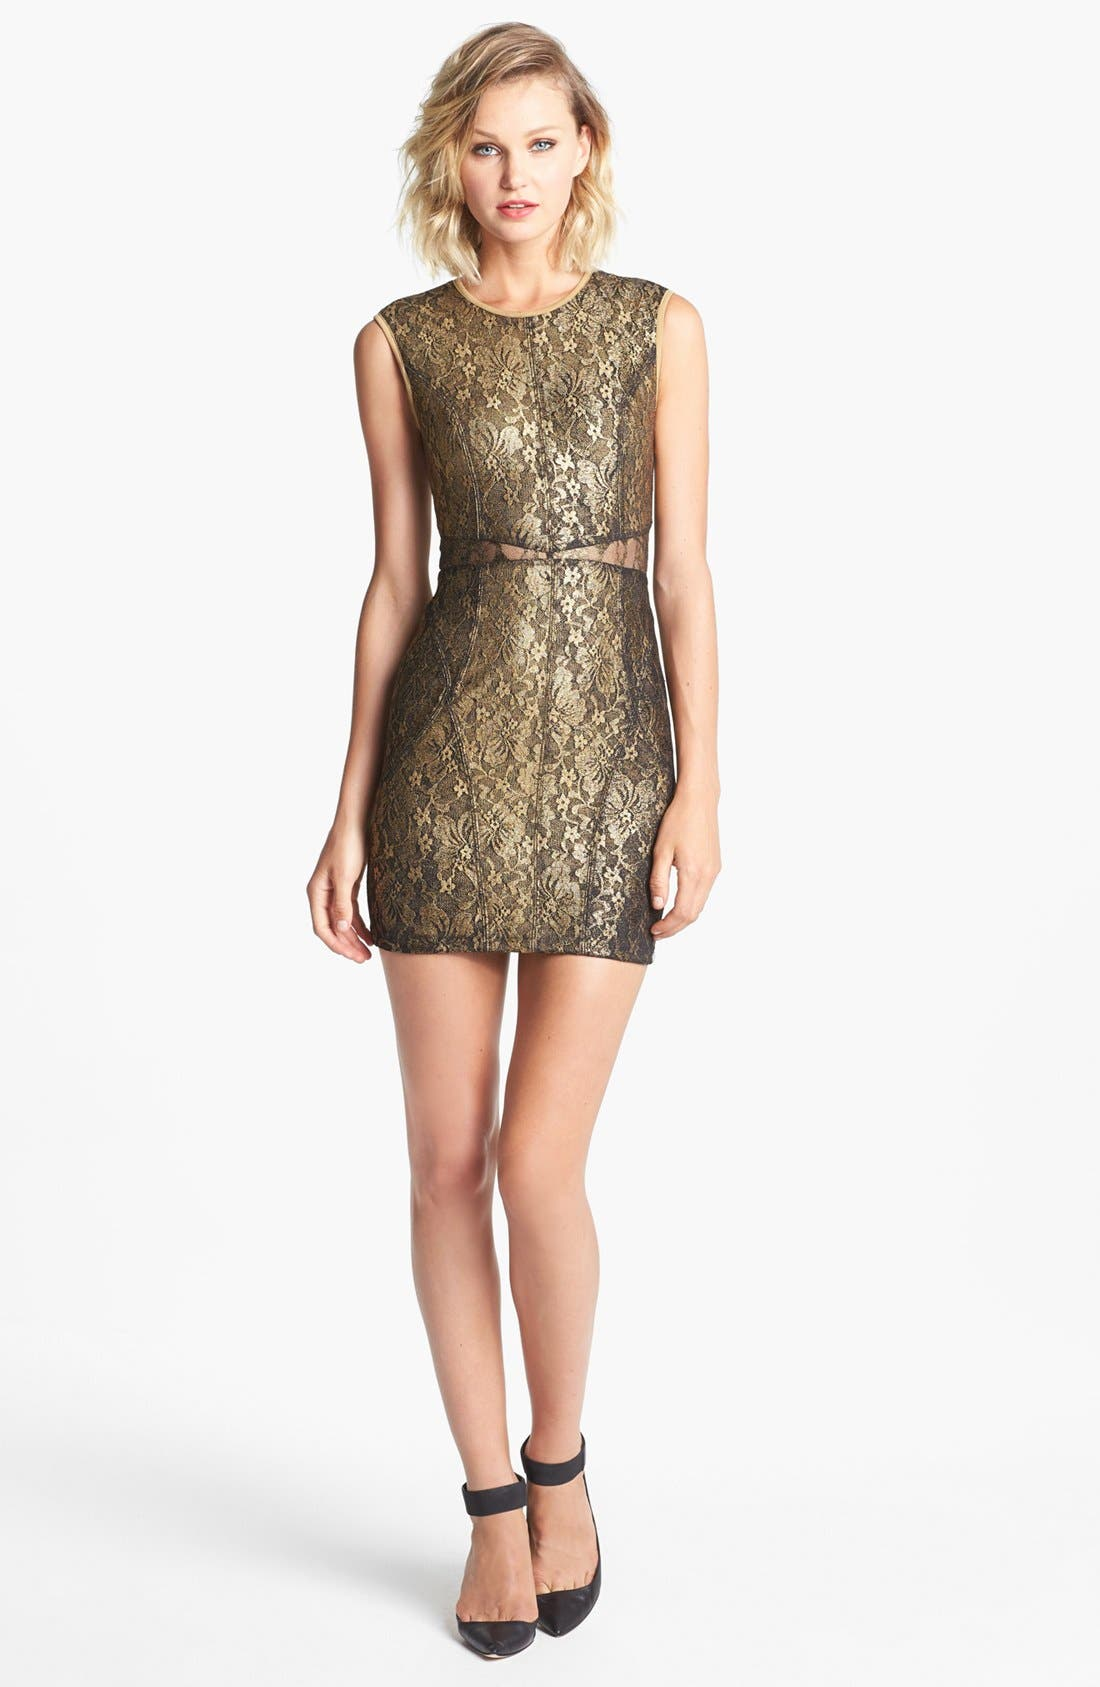 Alternate Image 1 Selected - Keepsake the label 'Stand by Me' Lace Body-Con Dress